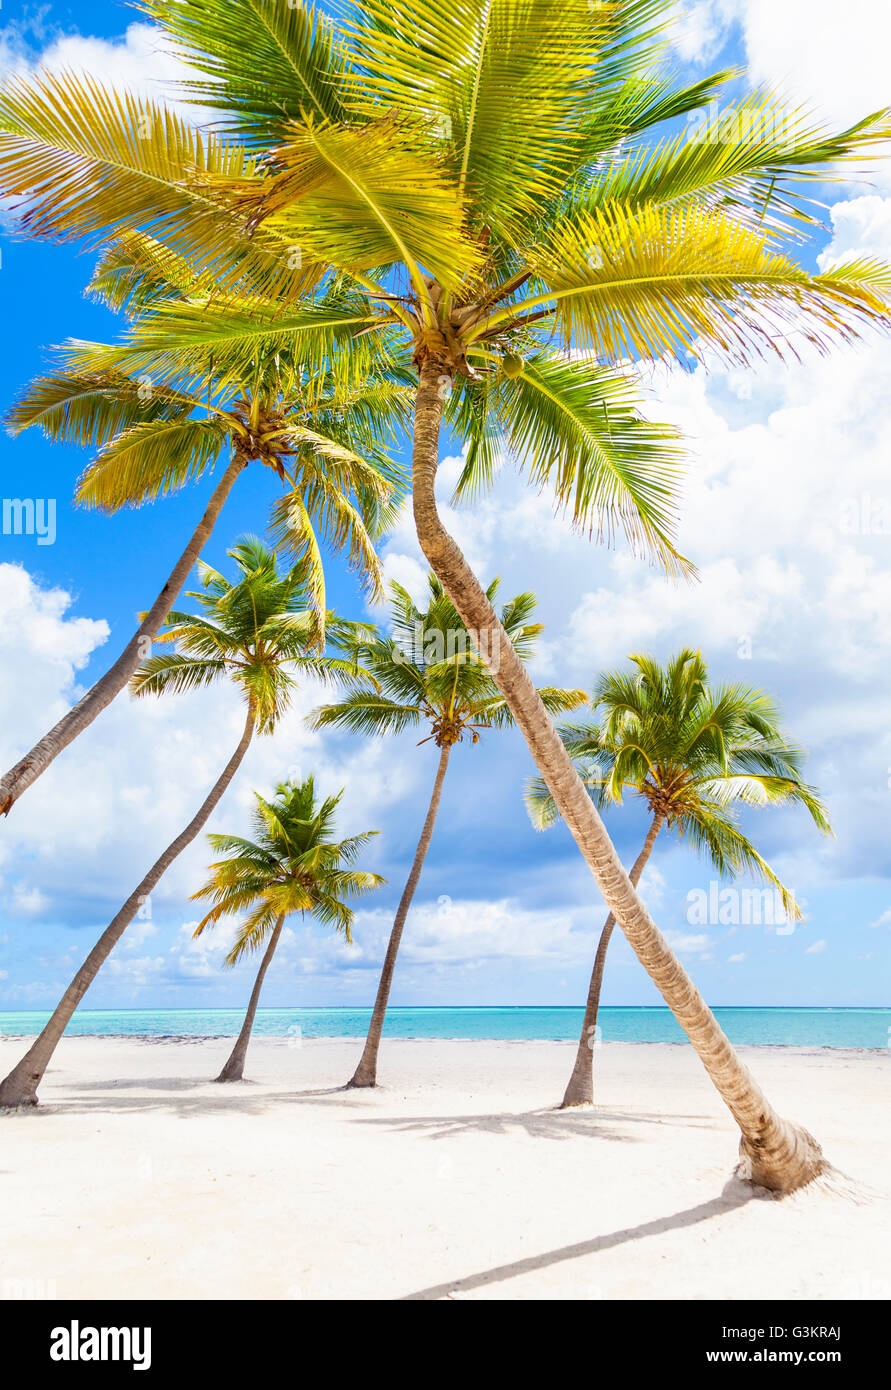 Palm trees leaning toward each other on beach, Dominican Republic, The Caribbean - Stock Image